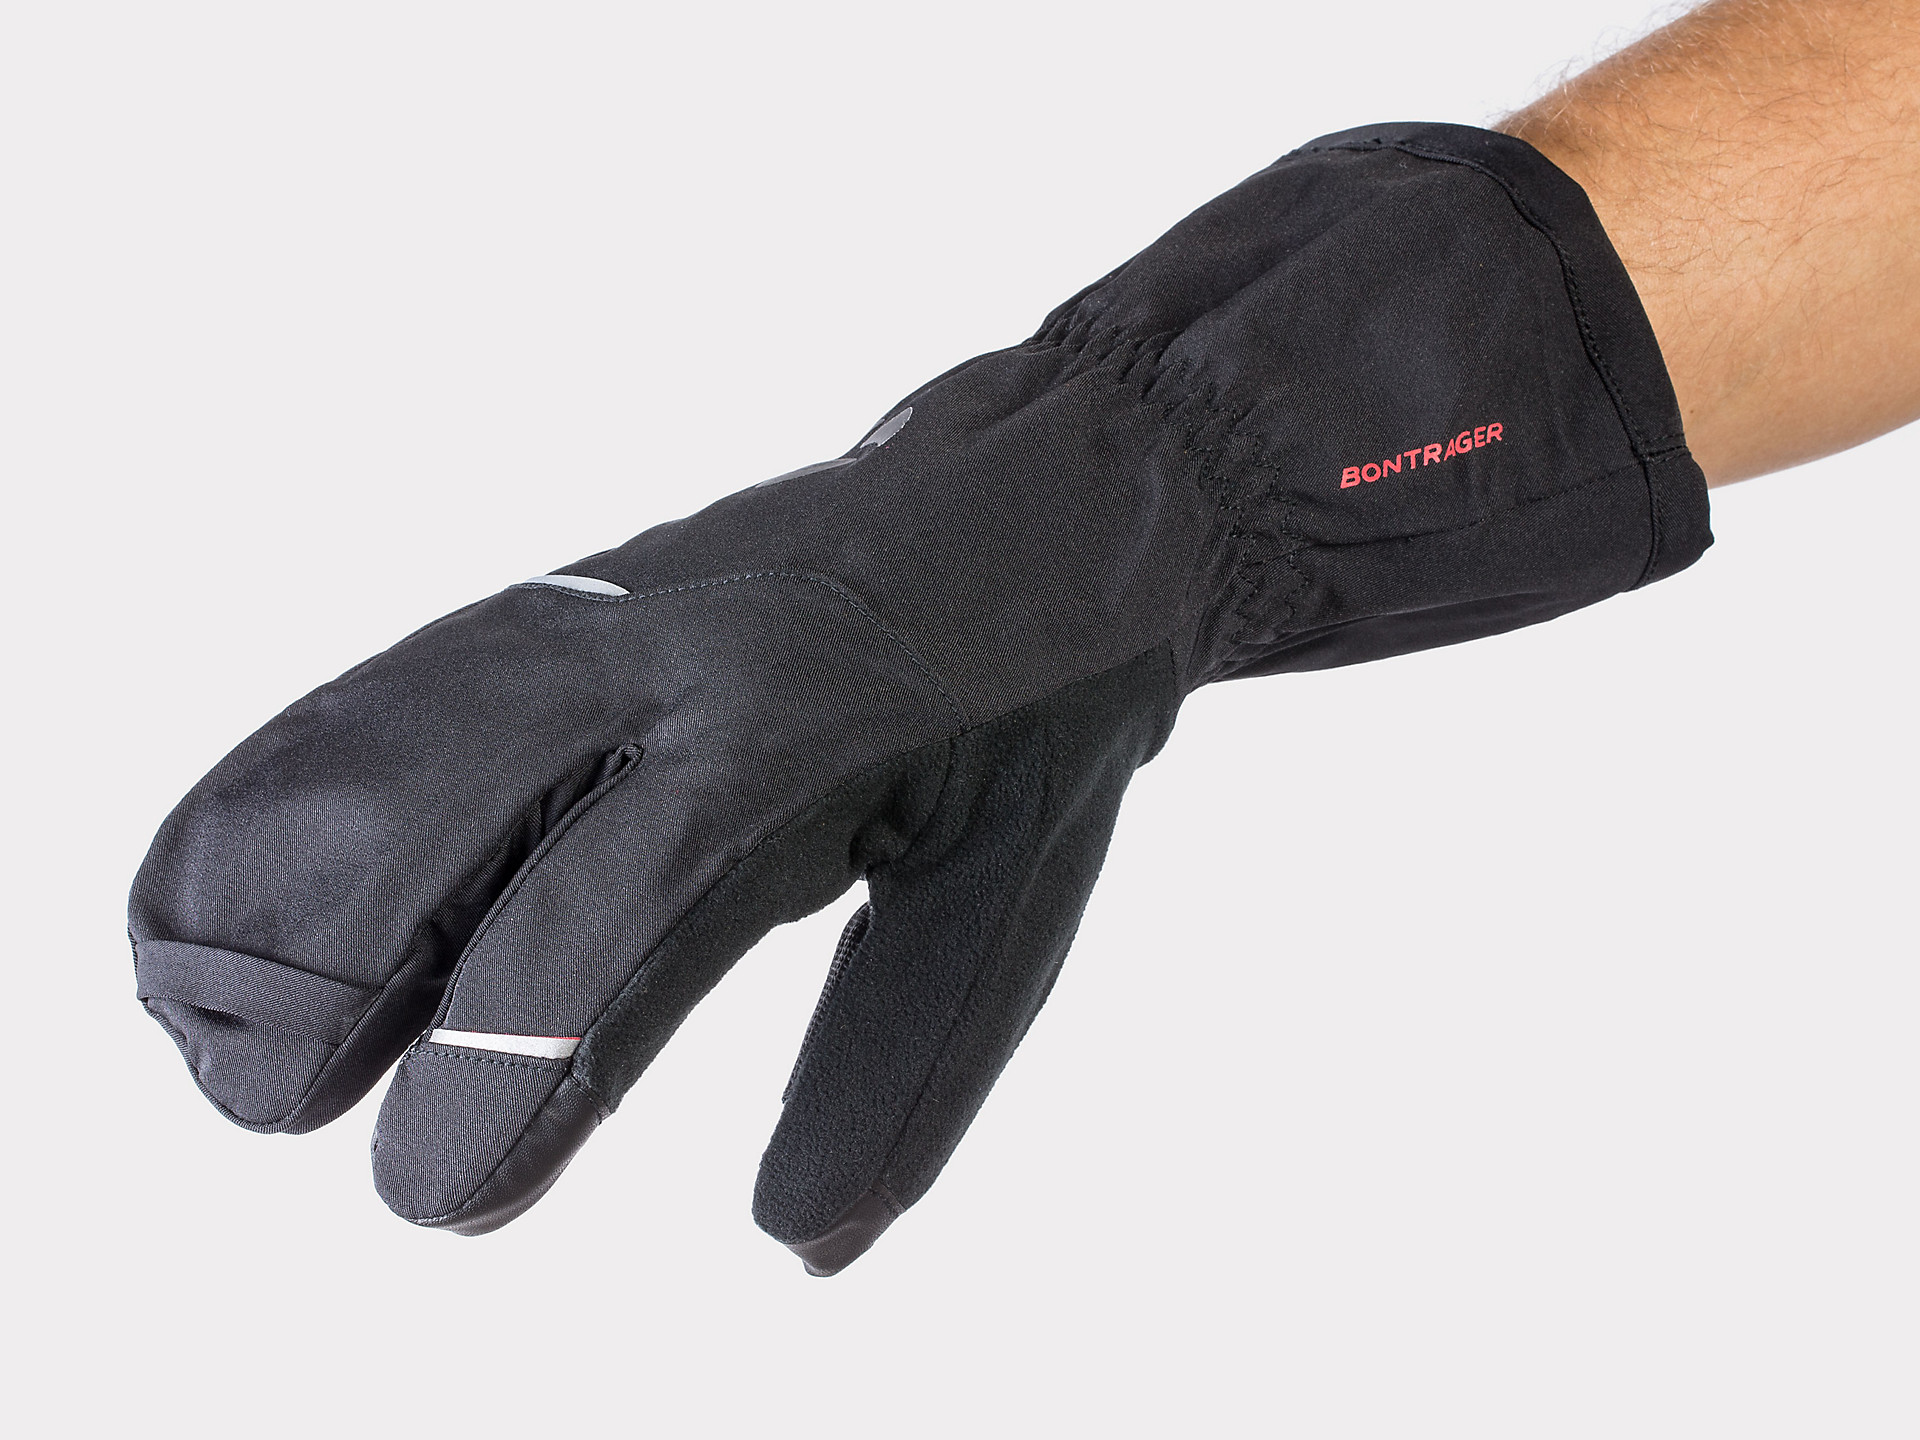 Winter Warm Cold Weather Gloves Bicycle Riding Cycling Sports Hand Cover Warmers